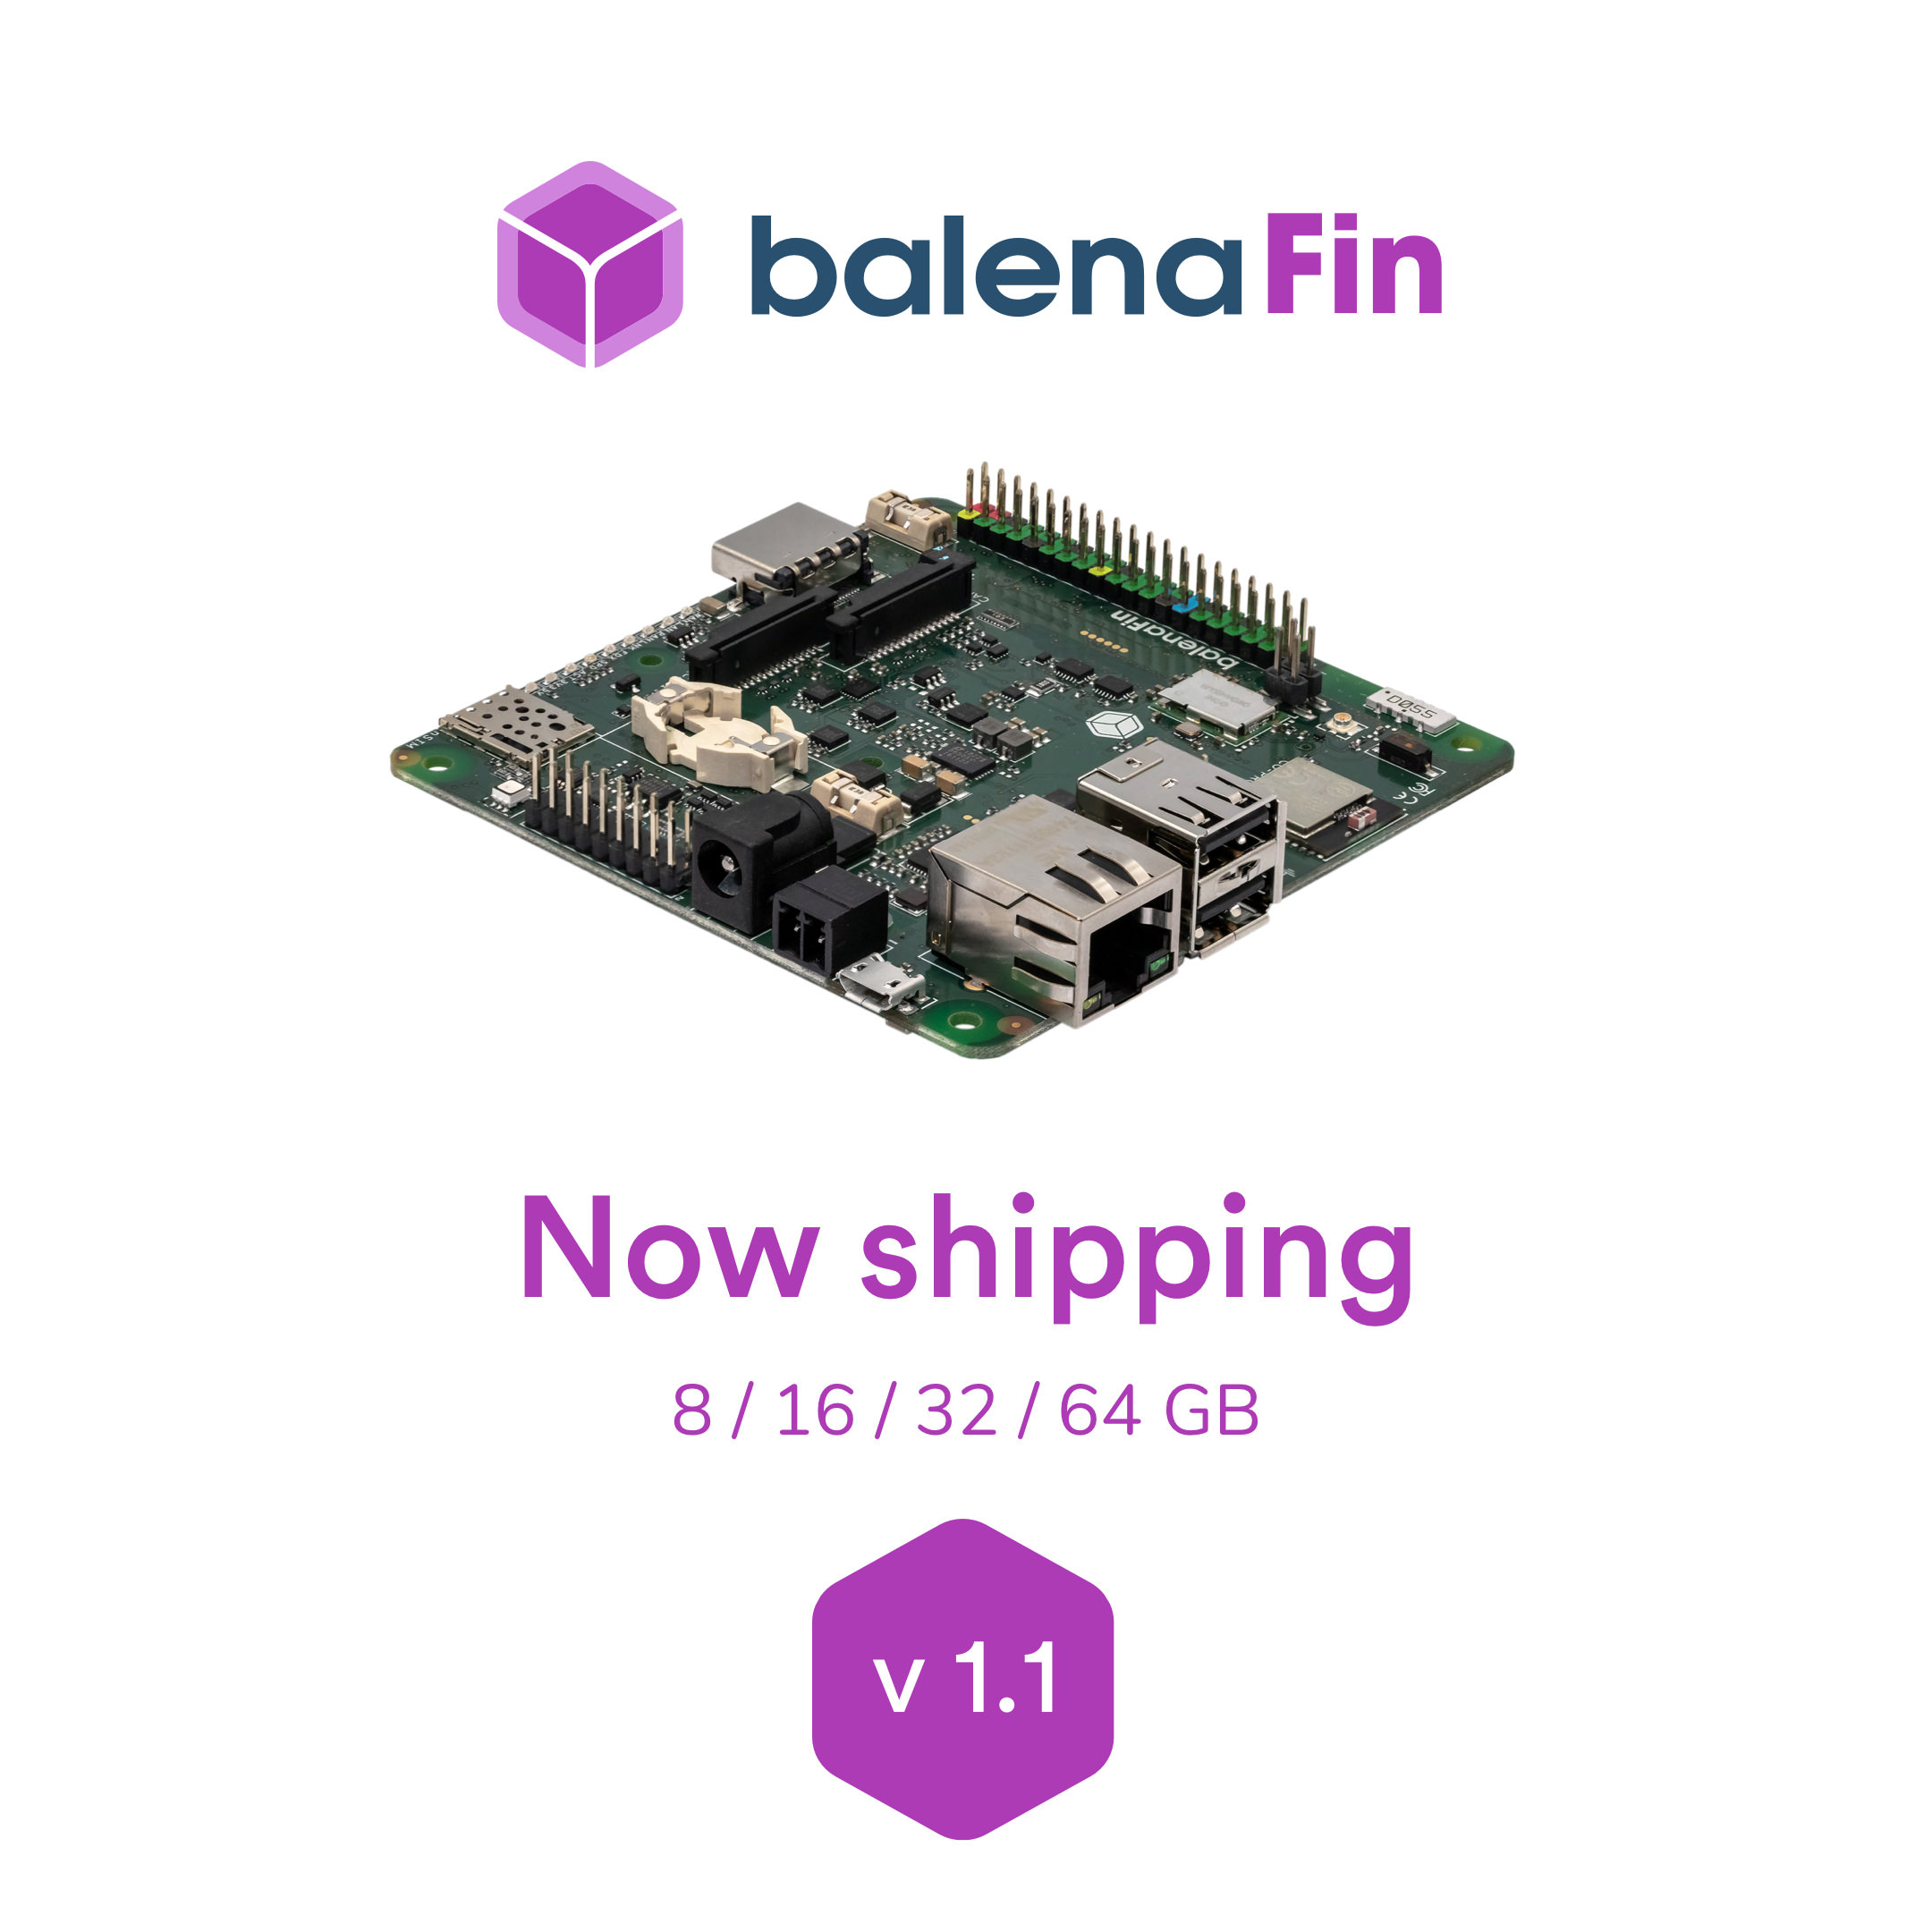 balena monthly roundup - May 2019